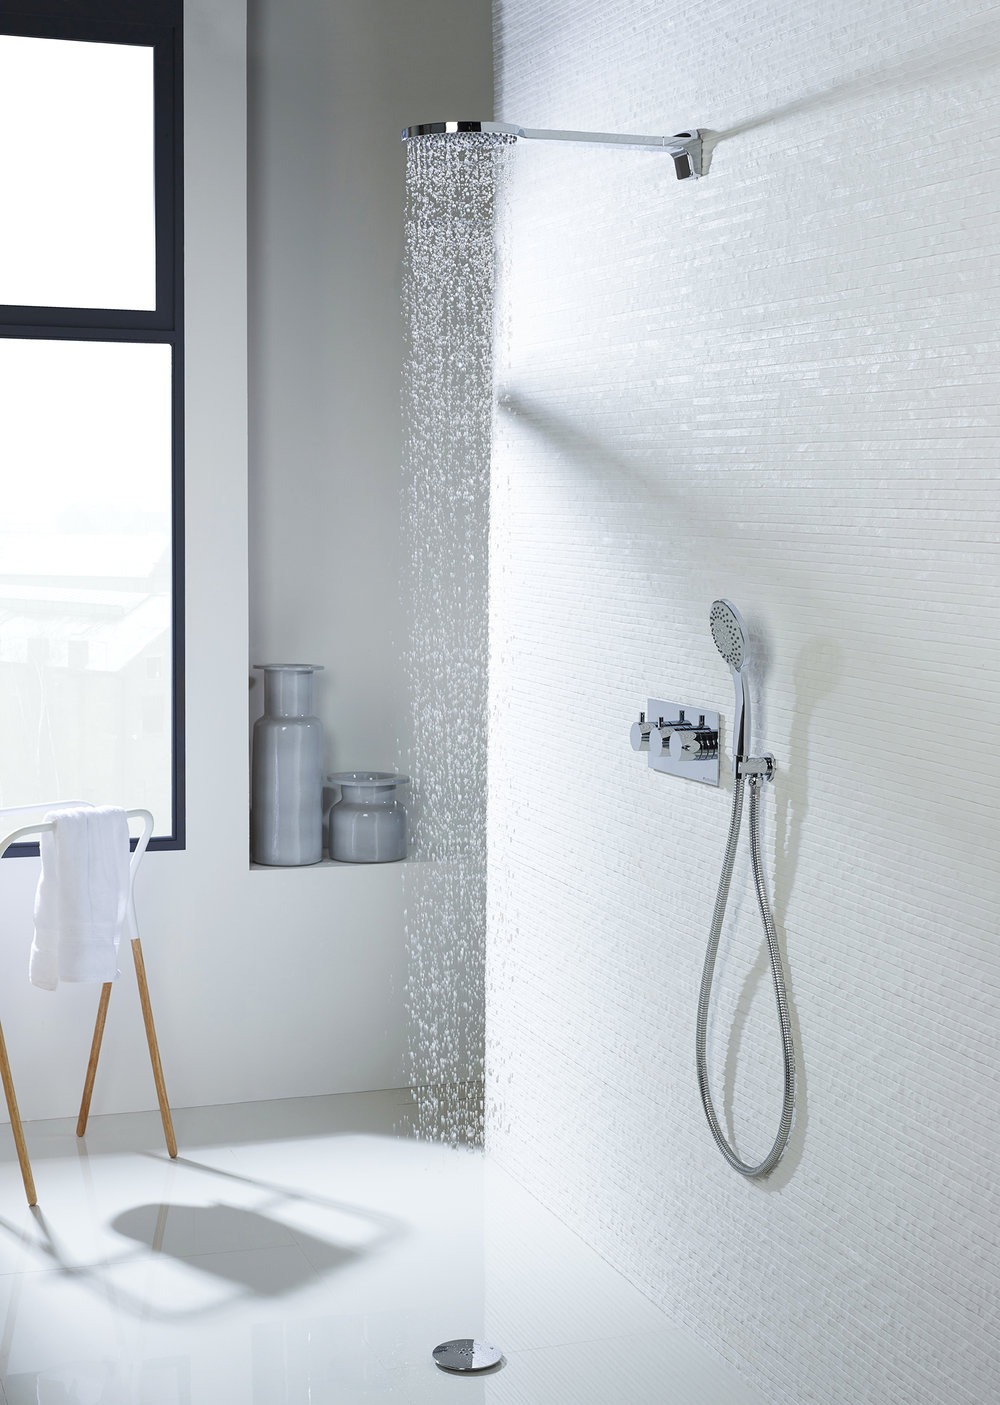 Thinking Clearly - Walk in or floor level showers with clear glass panelling and minimal framing are a simple way to open up small space bathrooms.